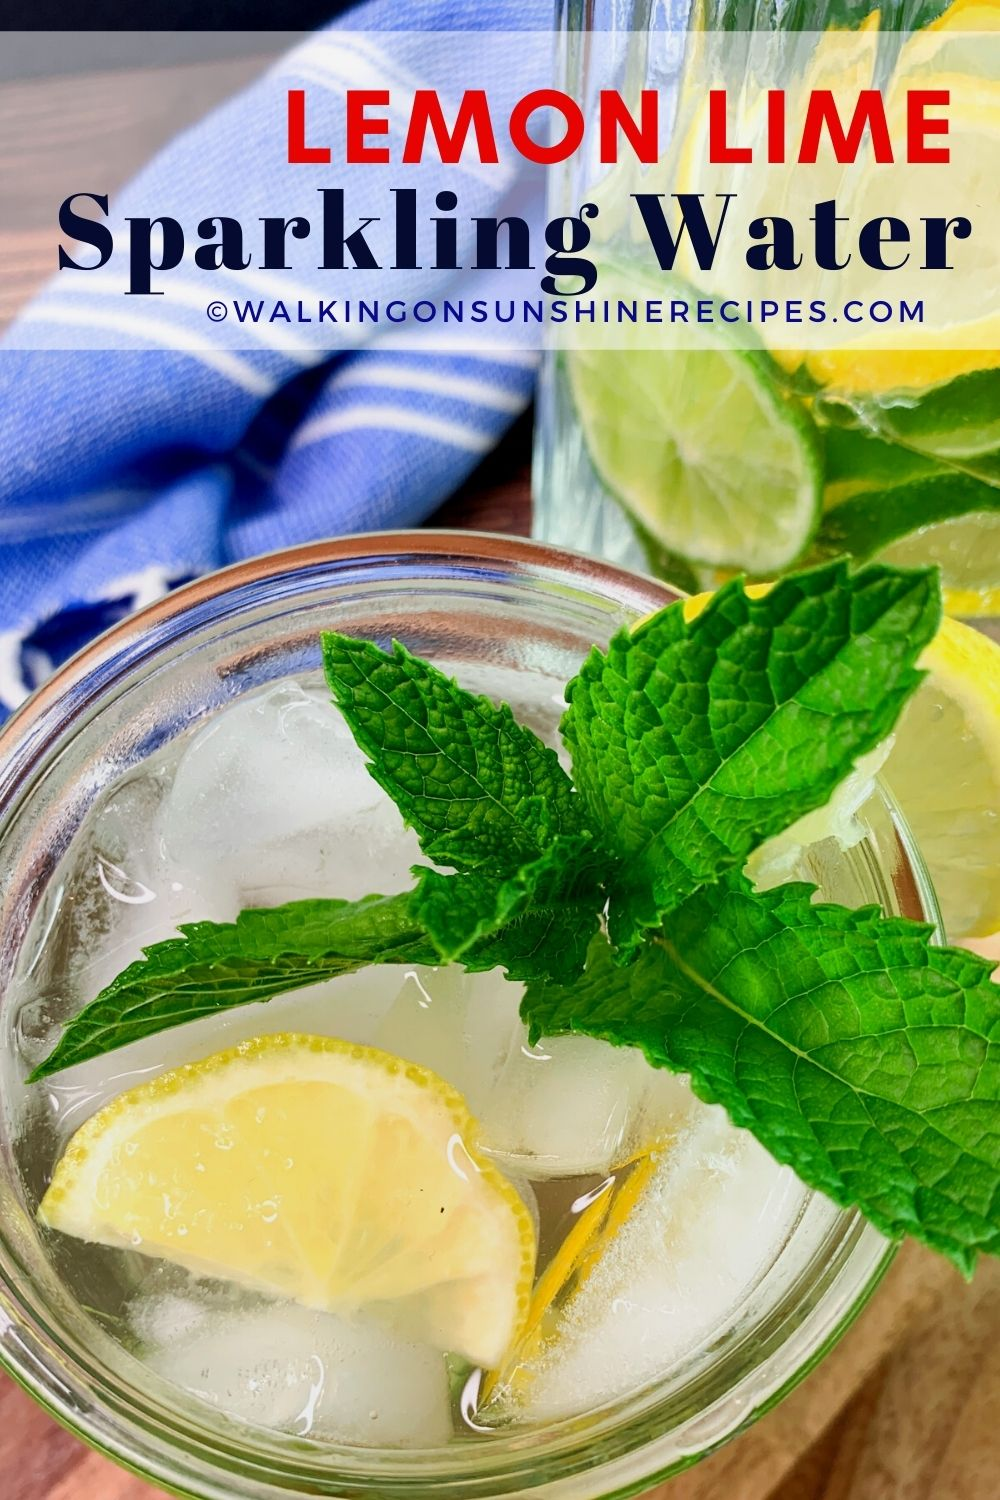 glass of lemon lime sparkling water with sprig of mint.